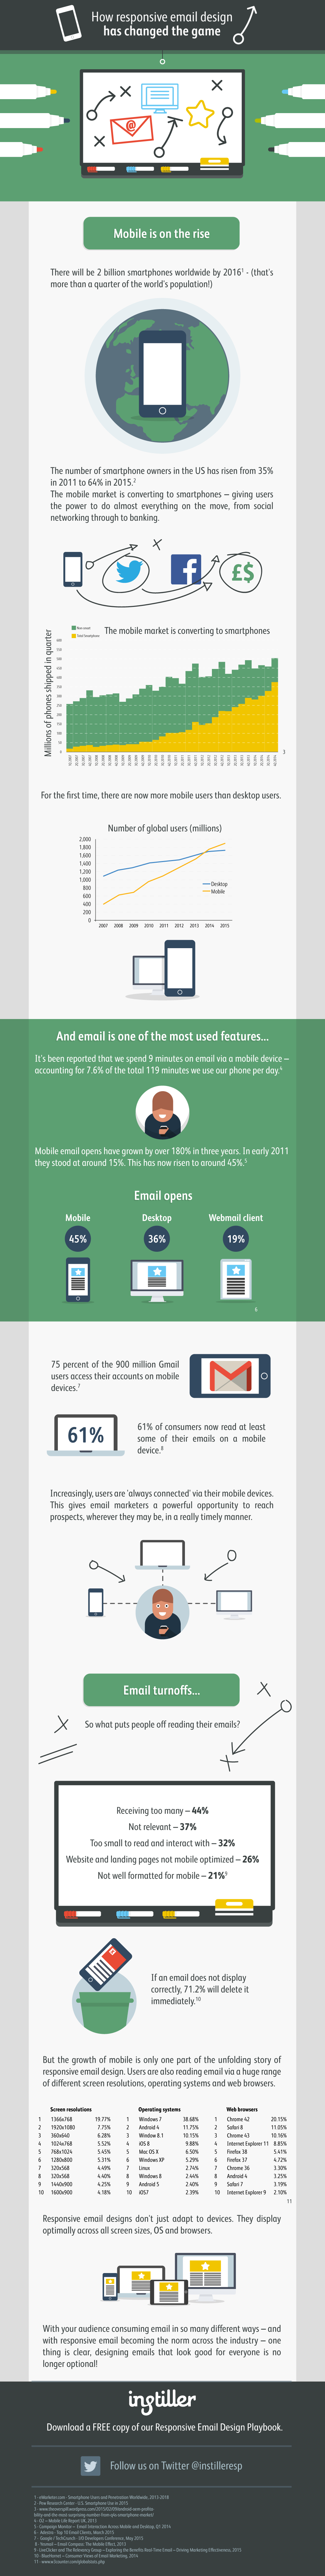 how-responsive-email-has-changed-the-game-infographic